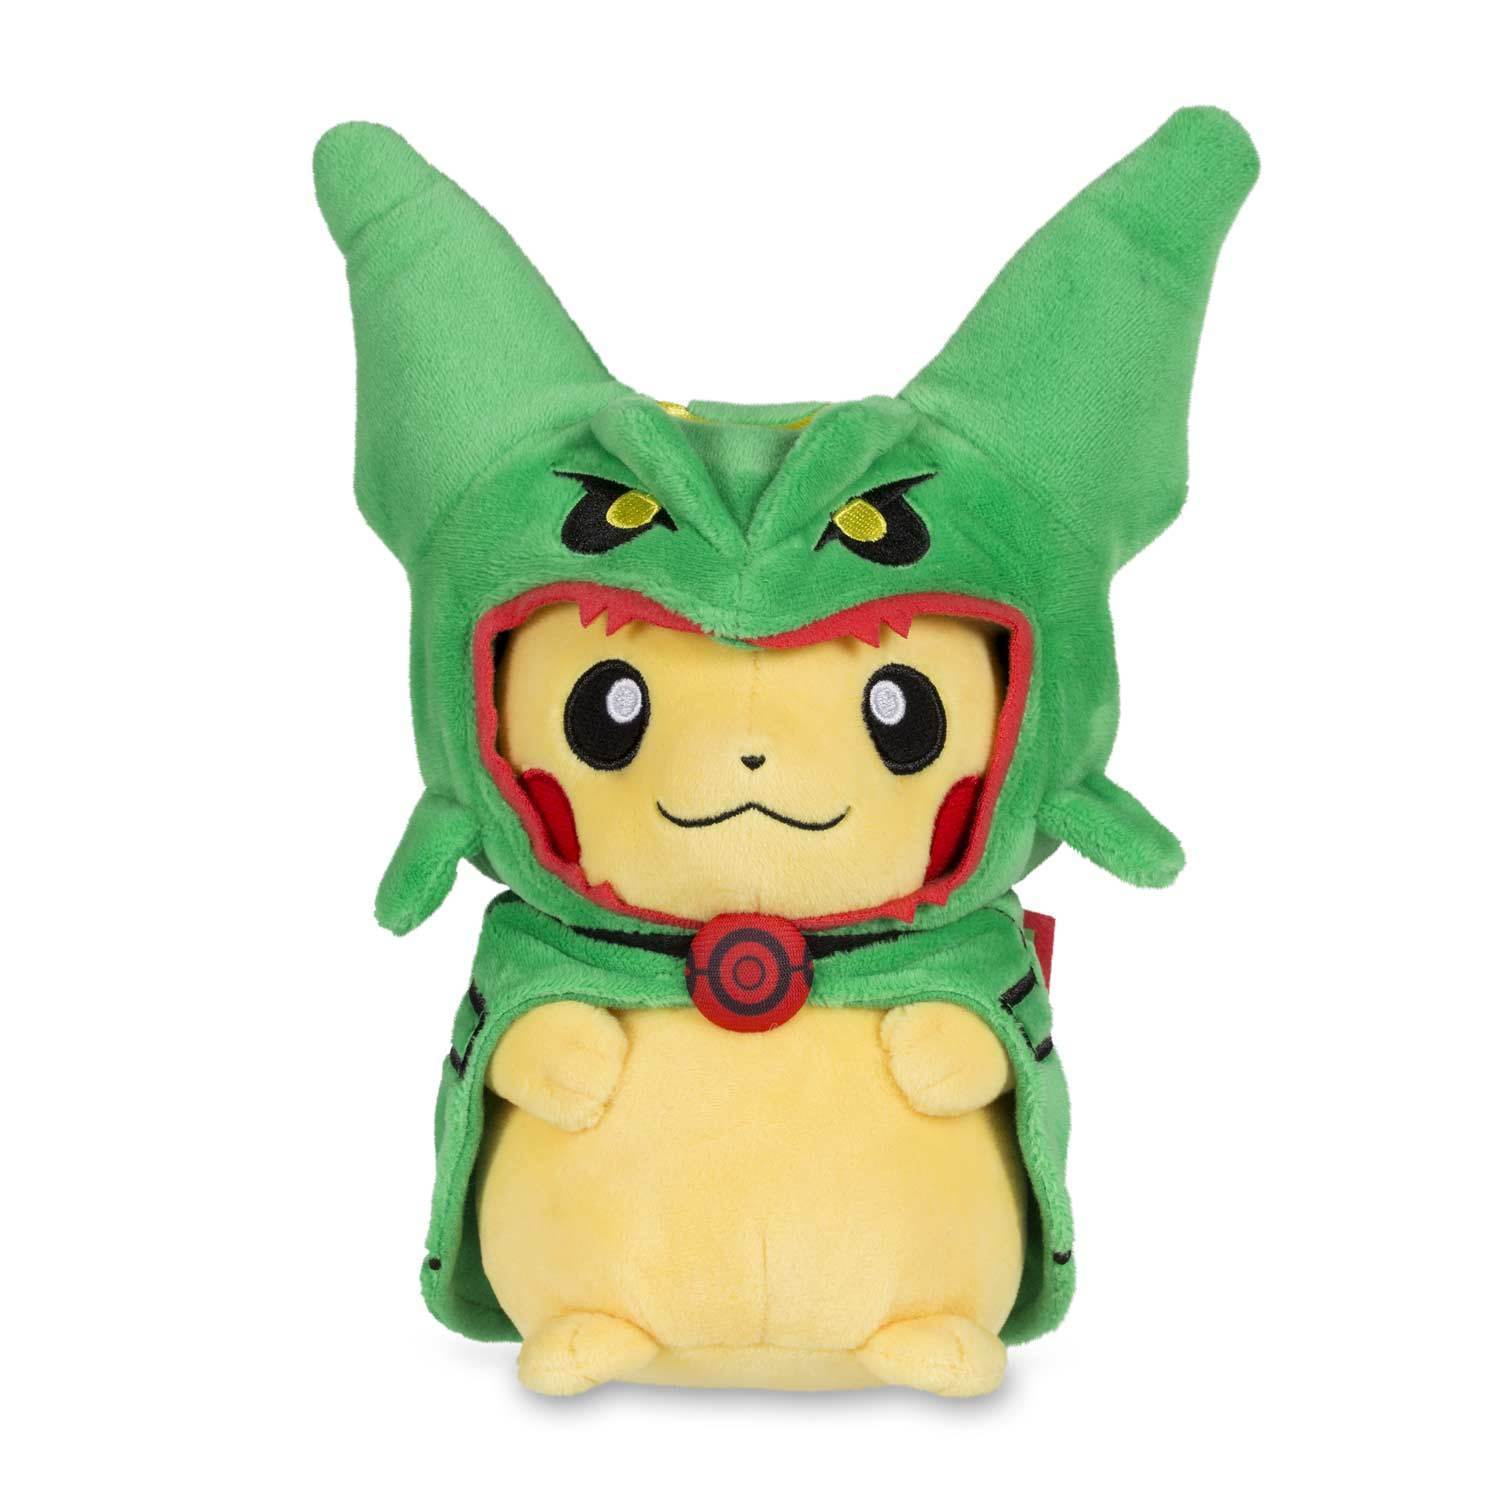 PIKACHU in Rayquaza Costume 8 Inch Plush - New with Tags, Fast FREE Shipping!